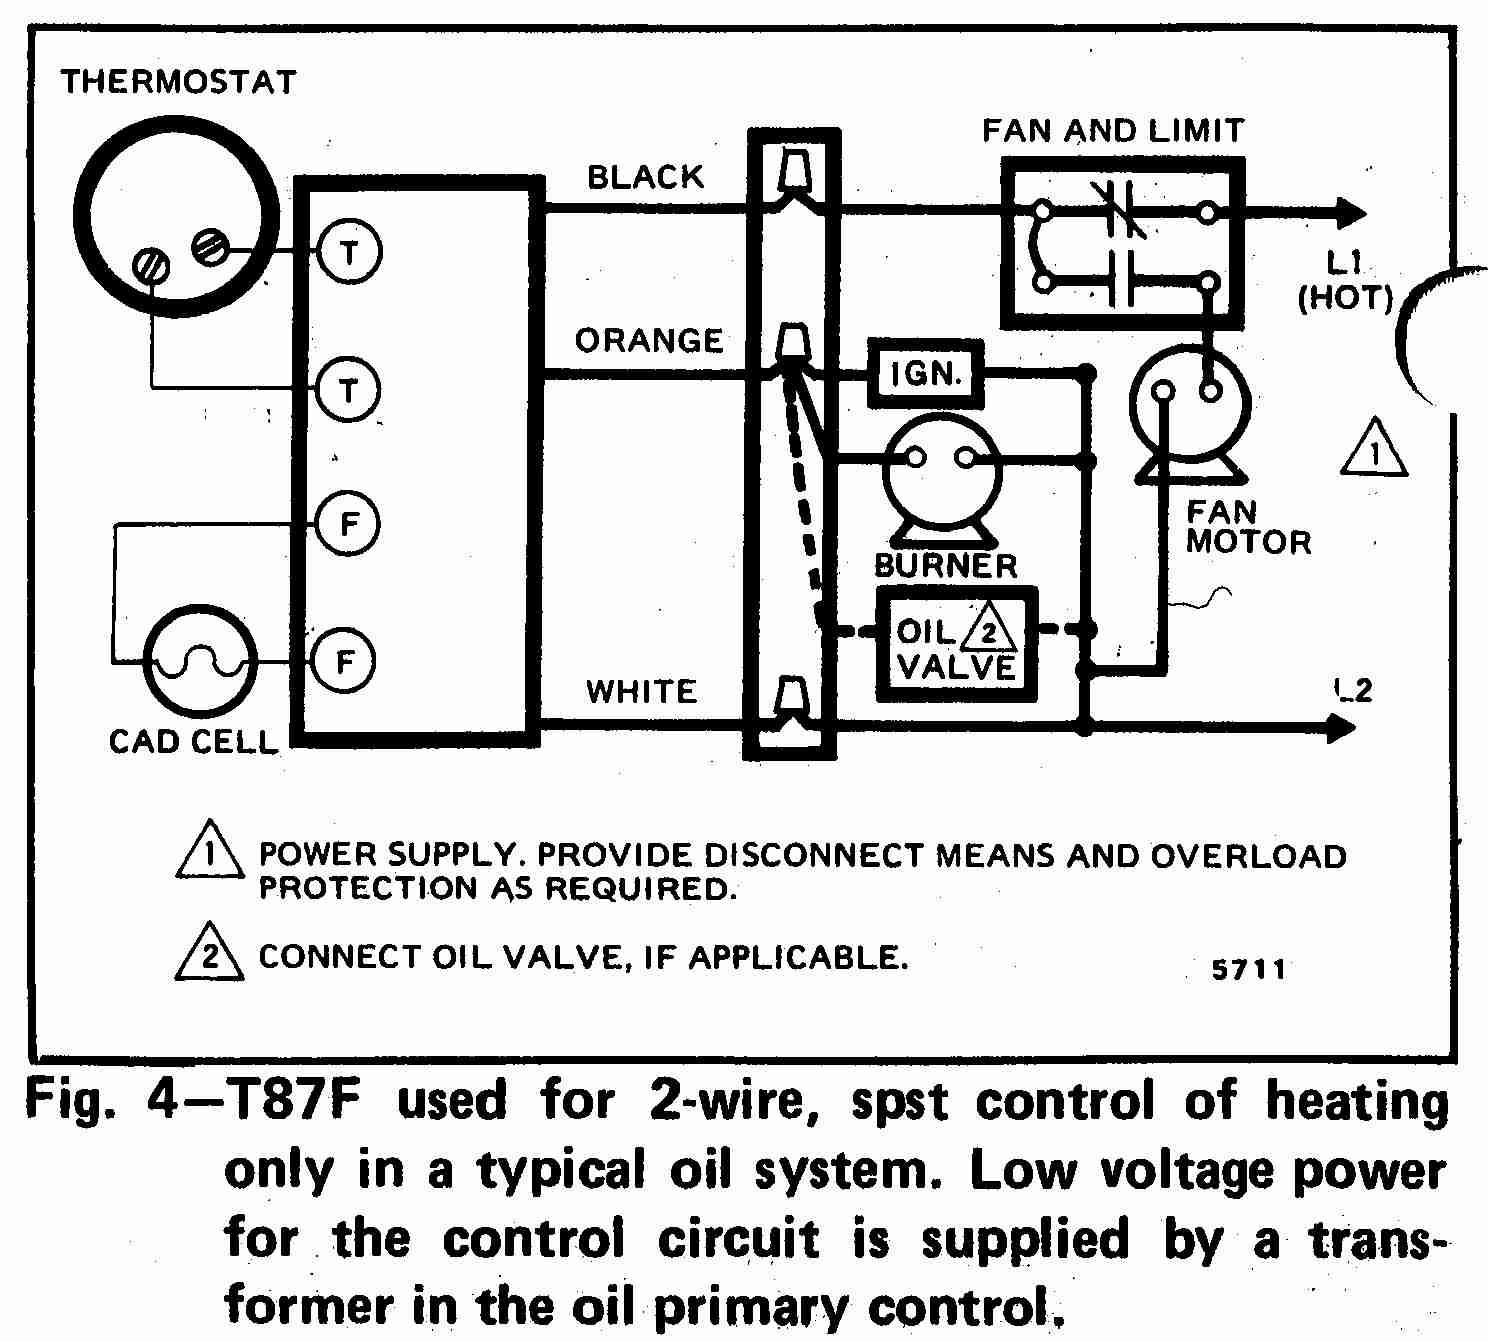 Room Thermostat Wiring Diagrams For Hvac Systems - Wiring Diagram For Honeywell Thermostats